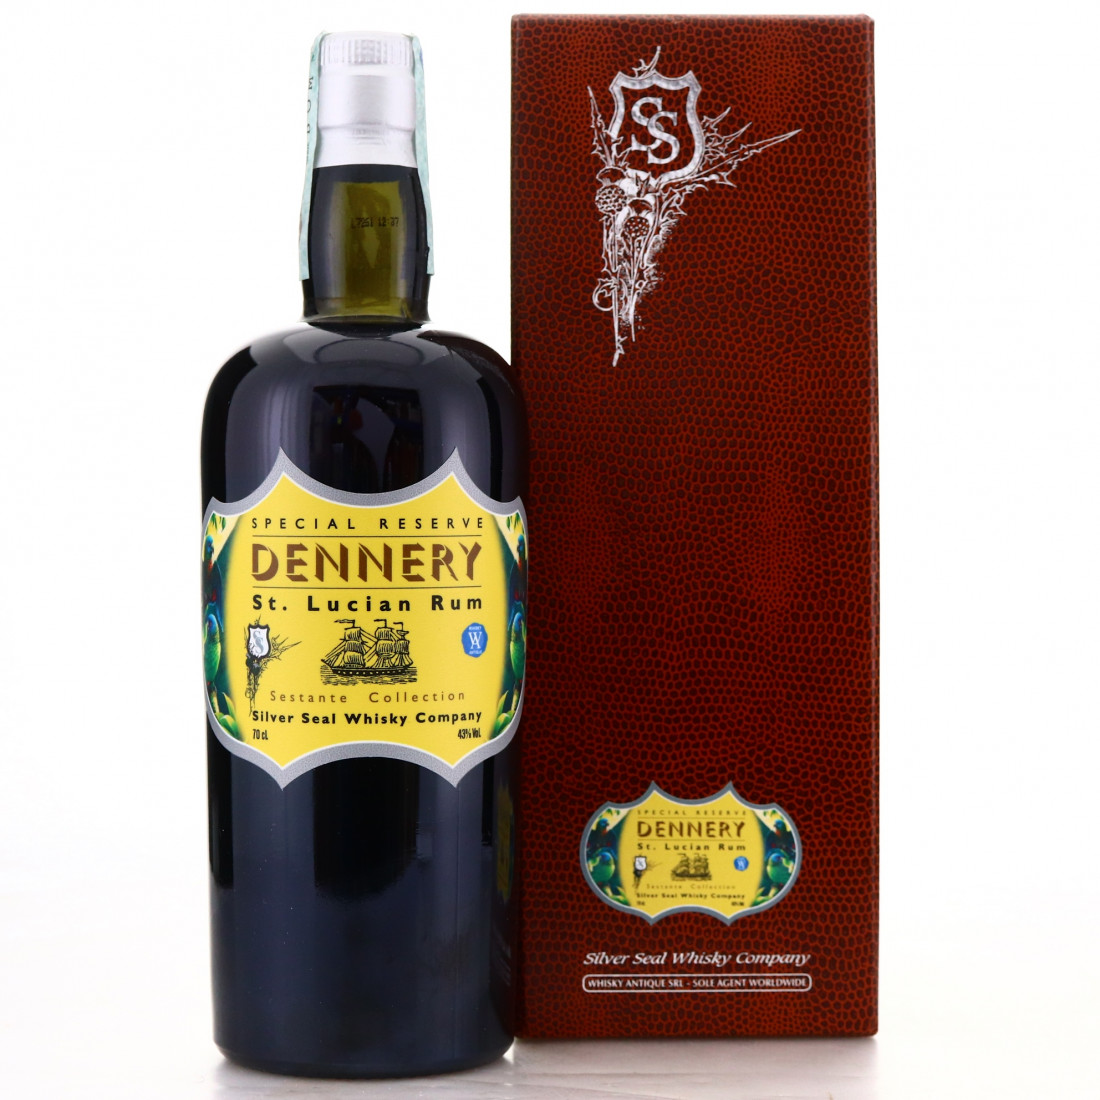 Silver Seal Dennery St Lucian Rum / Sestante Collection